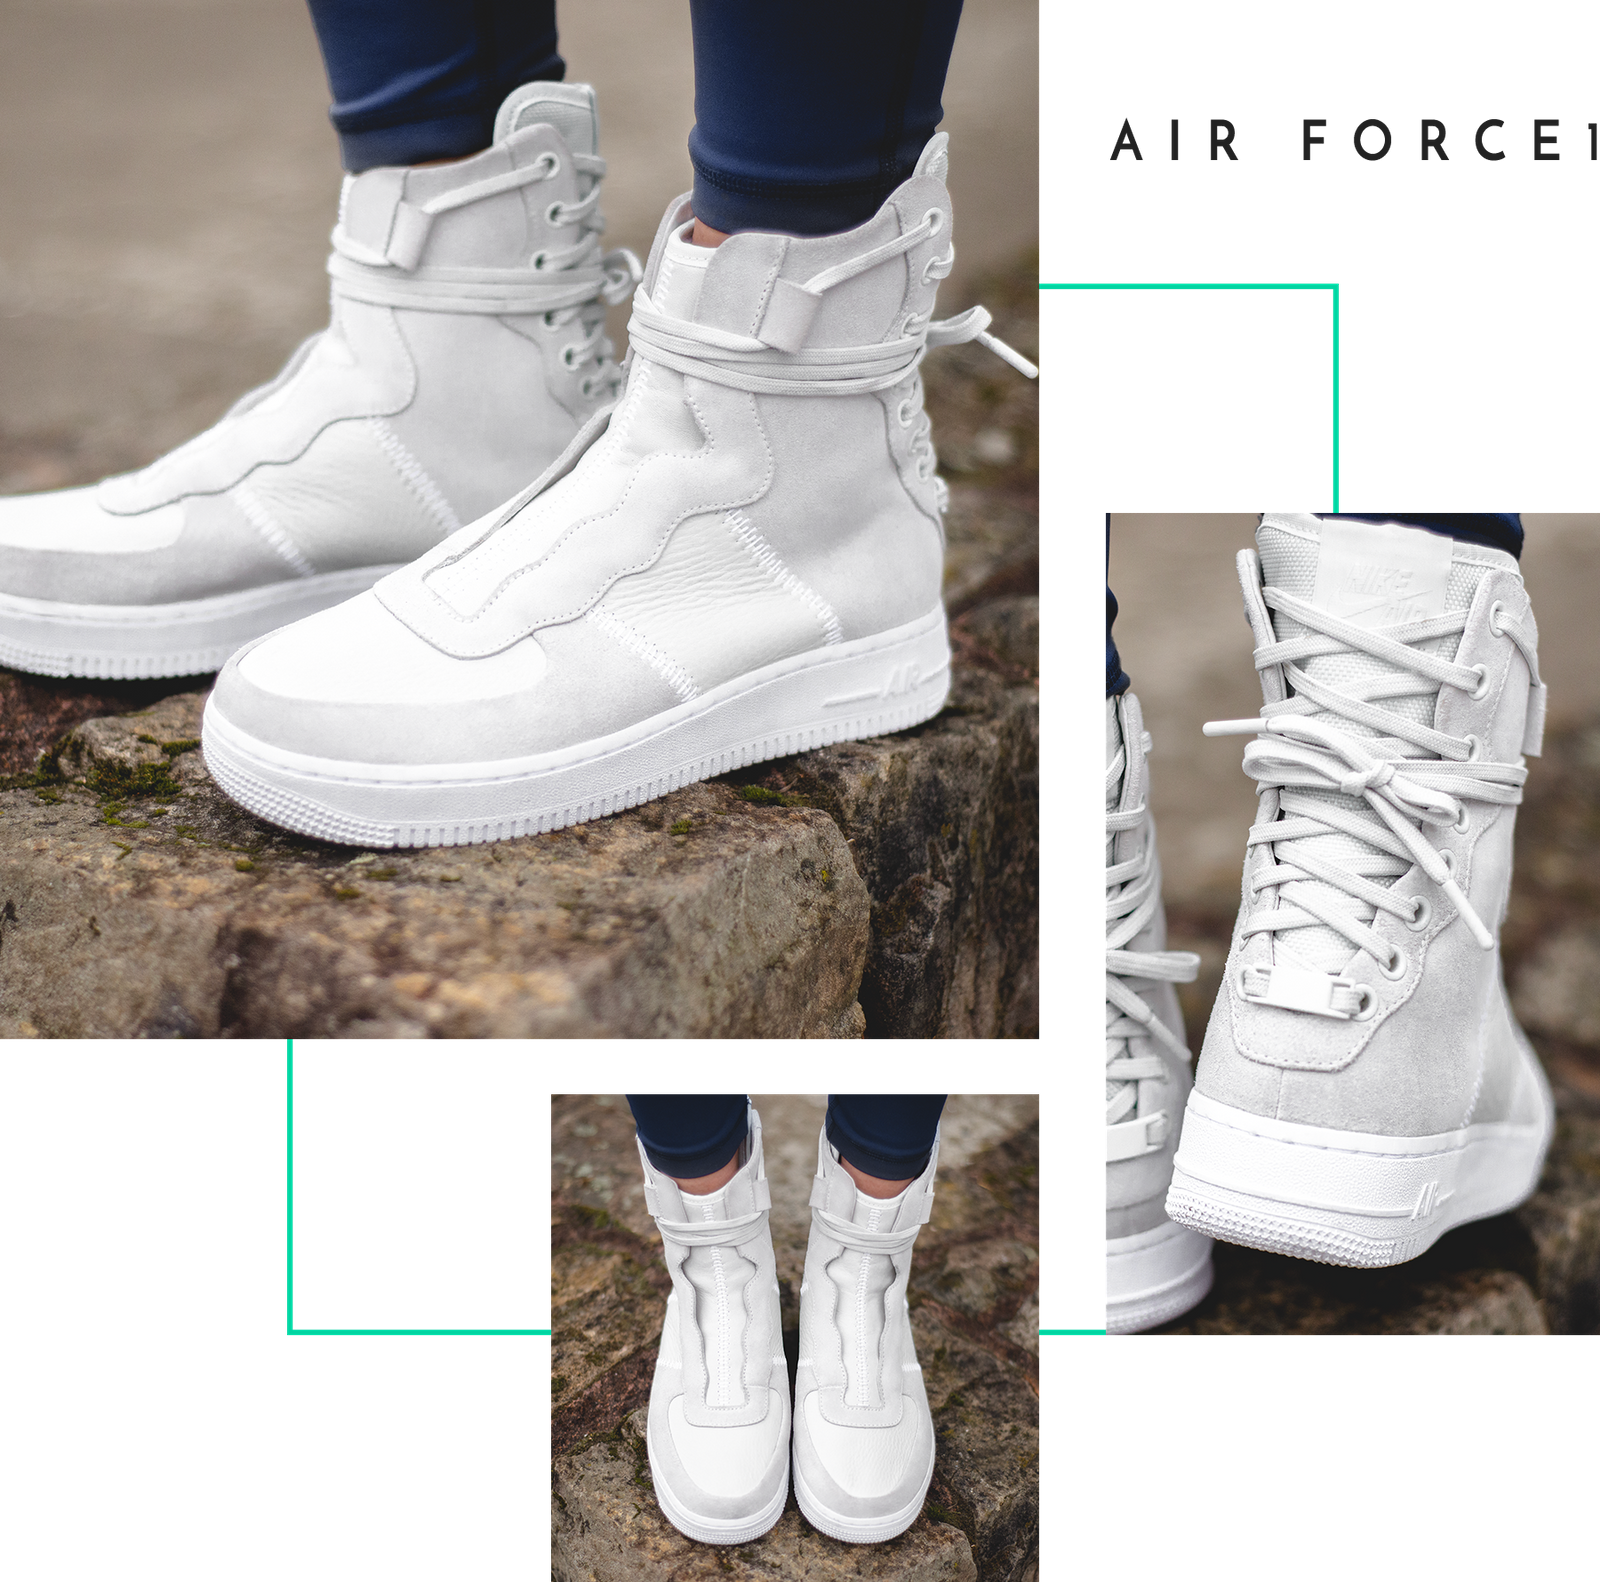 quality design f0364 b1500 Nike The 1 Reimagined Rebel Air Force Air Jordan High Top Boot Sneaker  Laces Back White